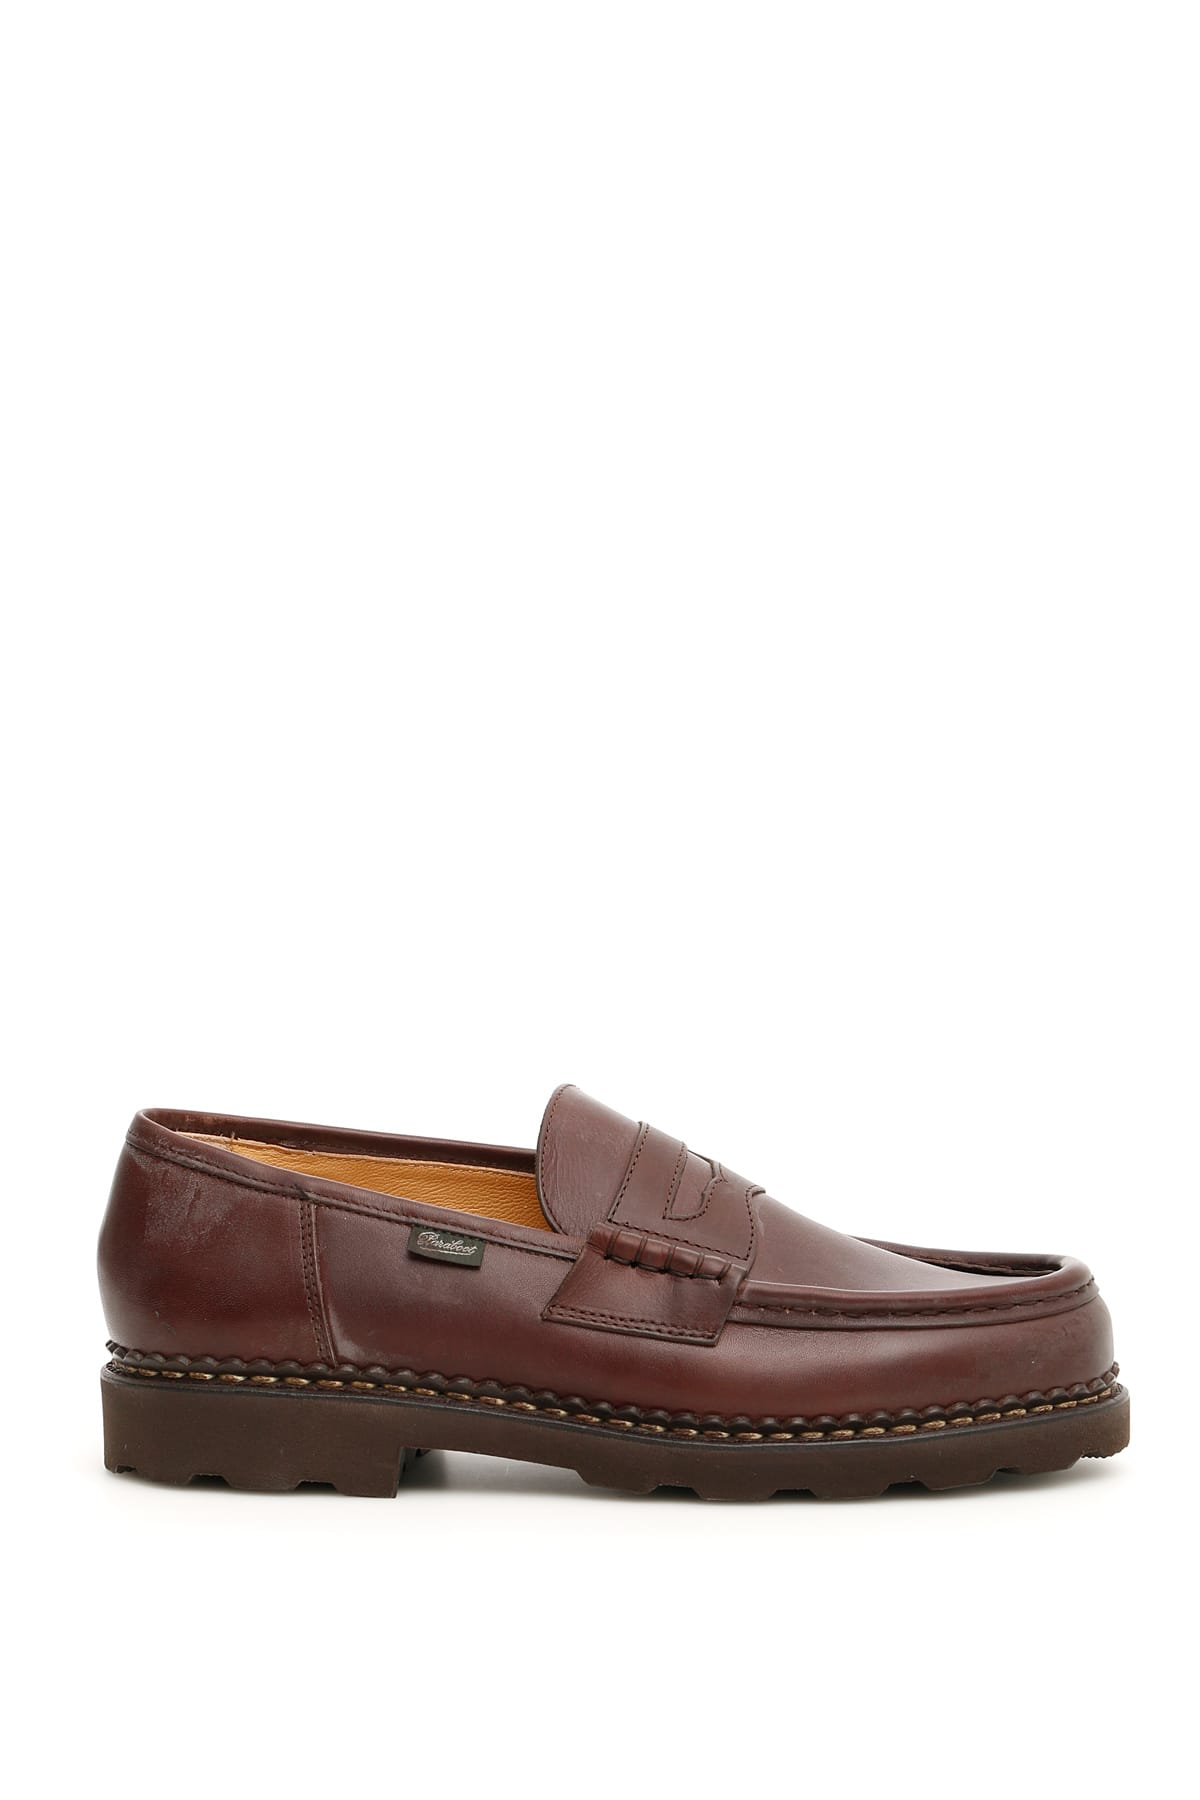 Paraboot Reims Moccasins